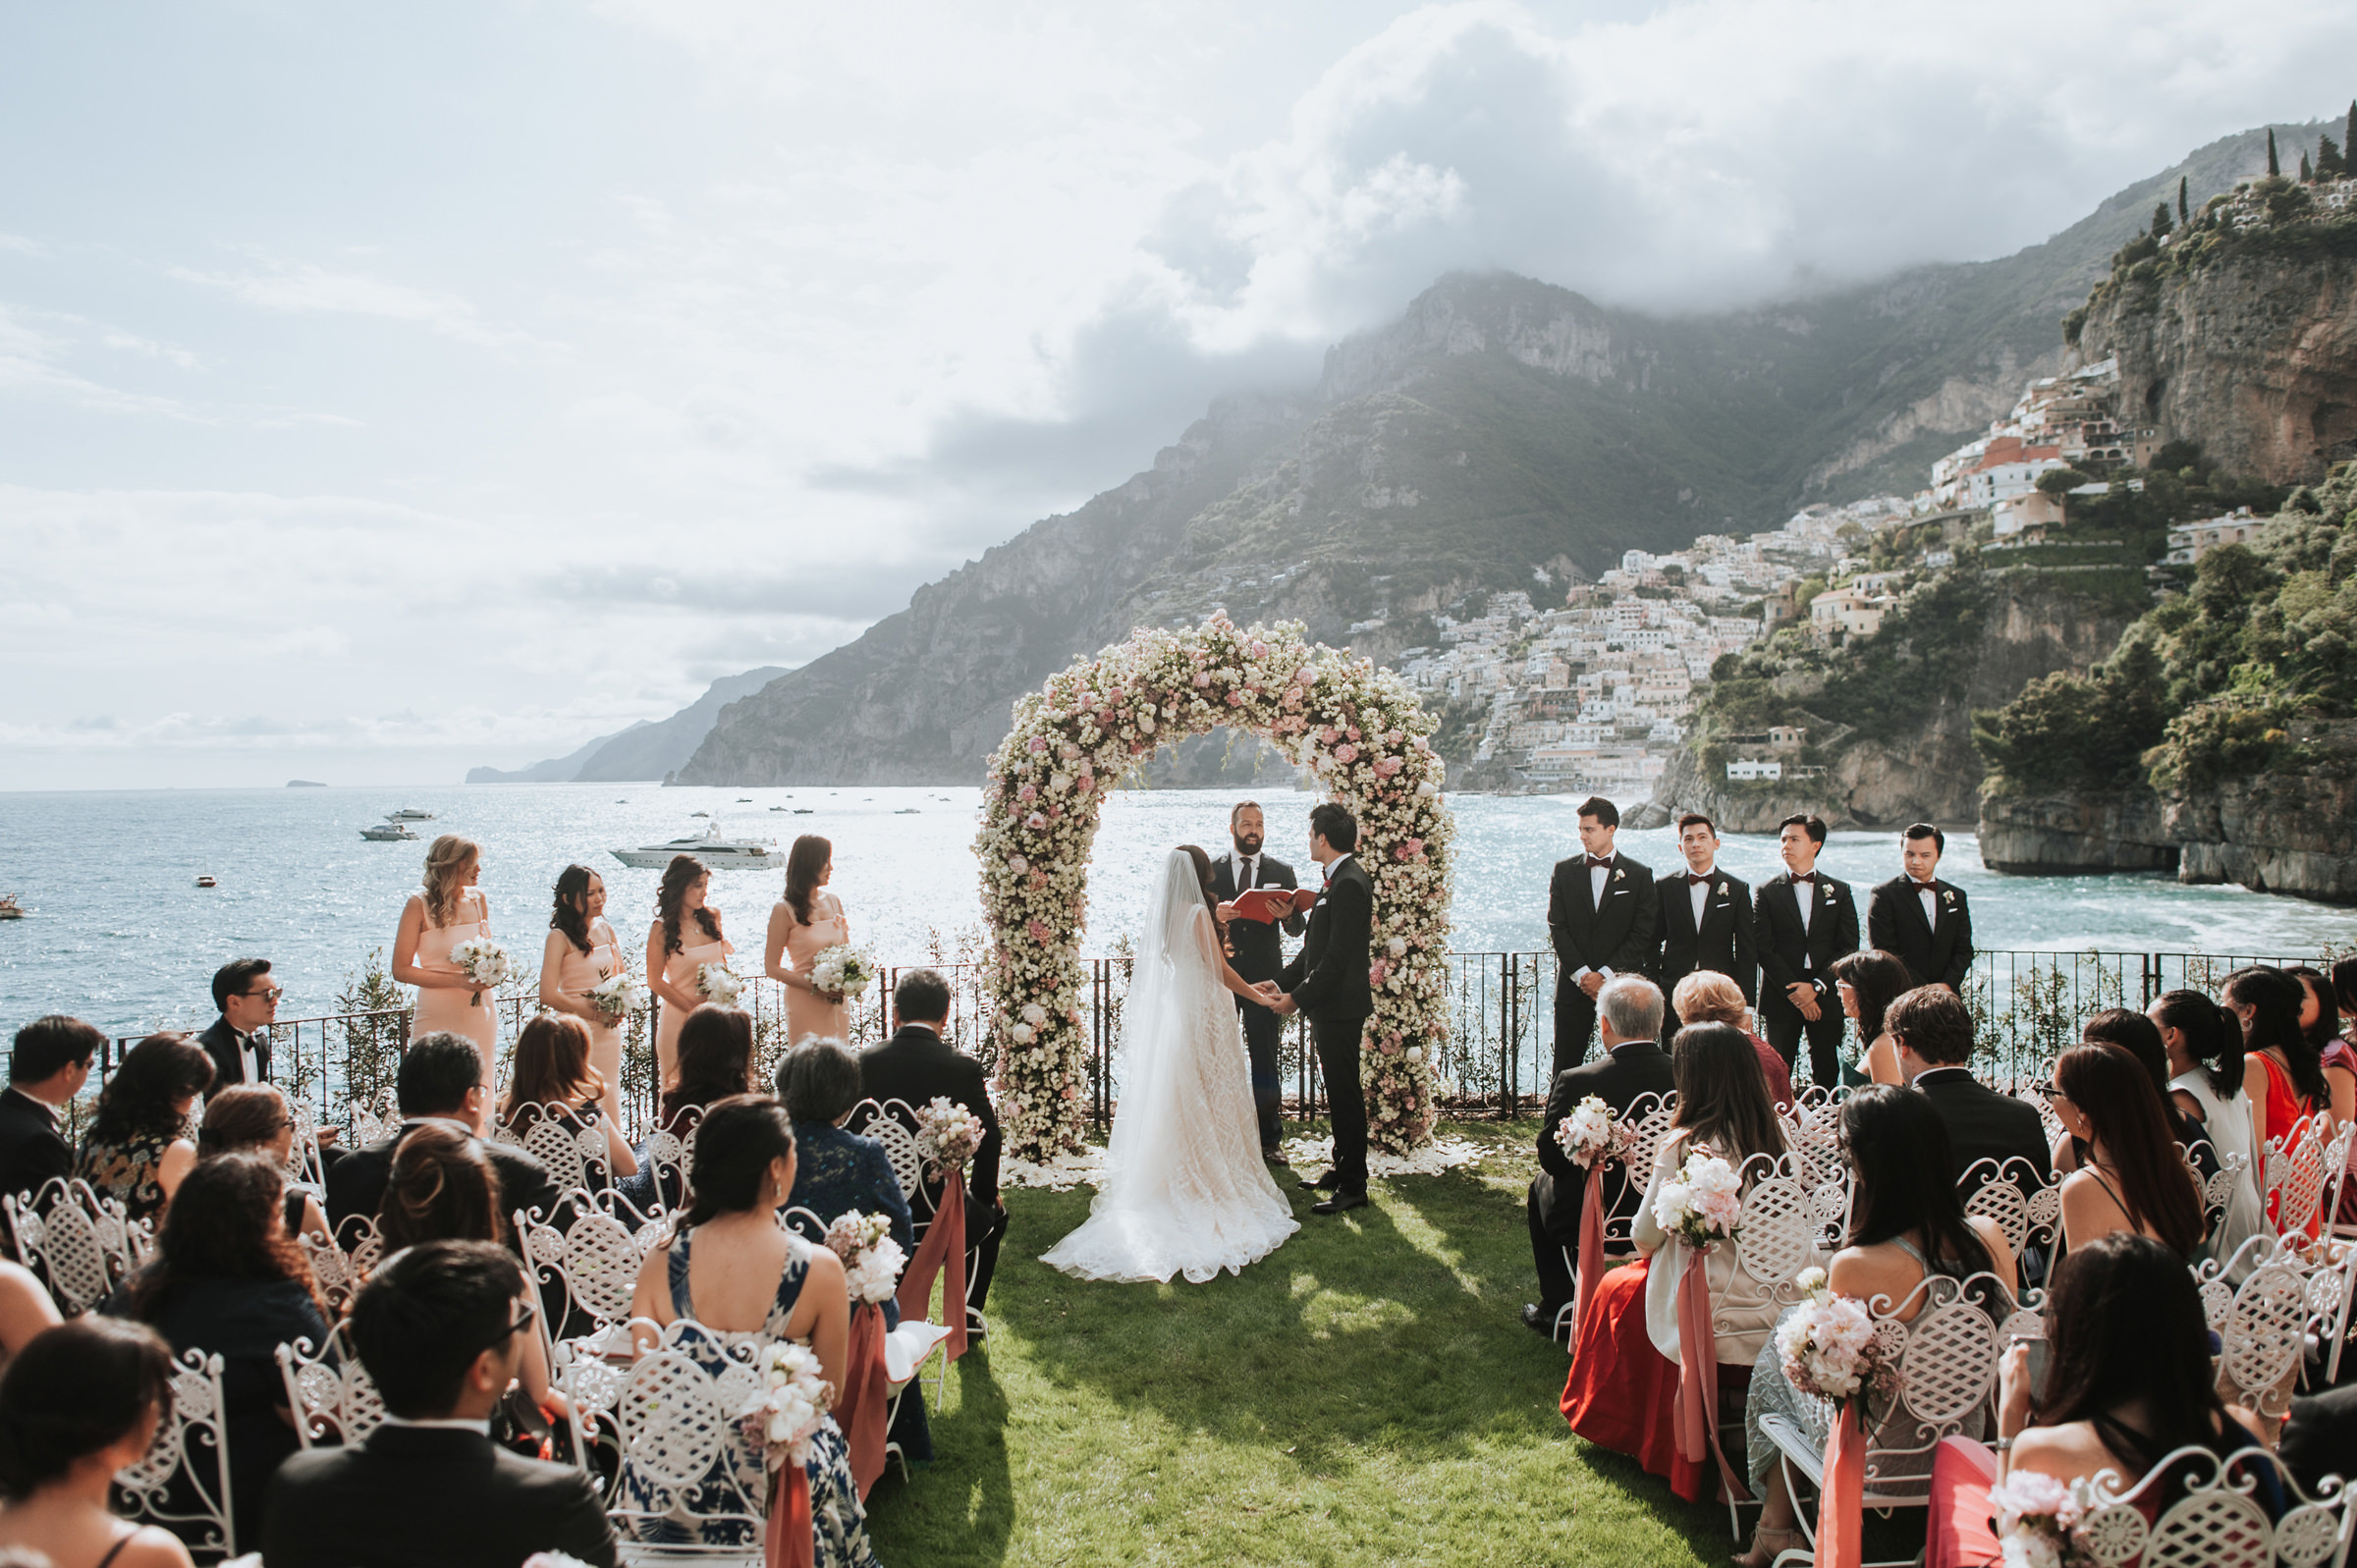 Wedding ceremony in front of lake and mountains. Photo by MunKeat Photography Studio